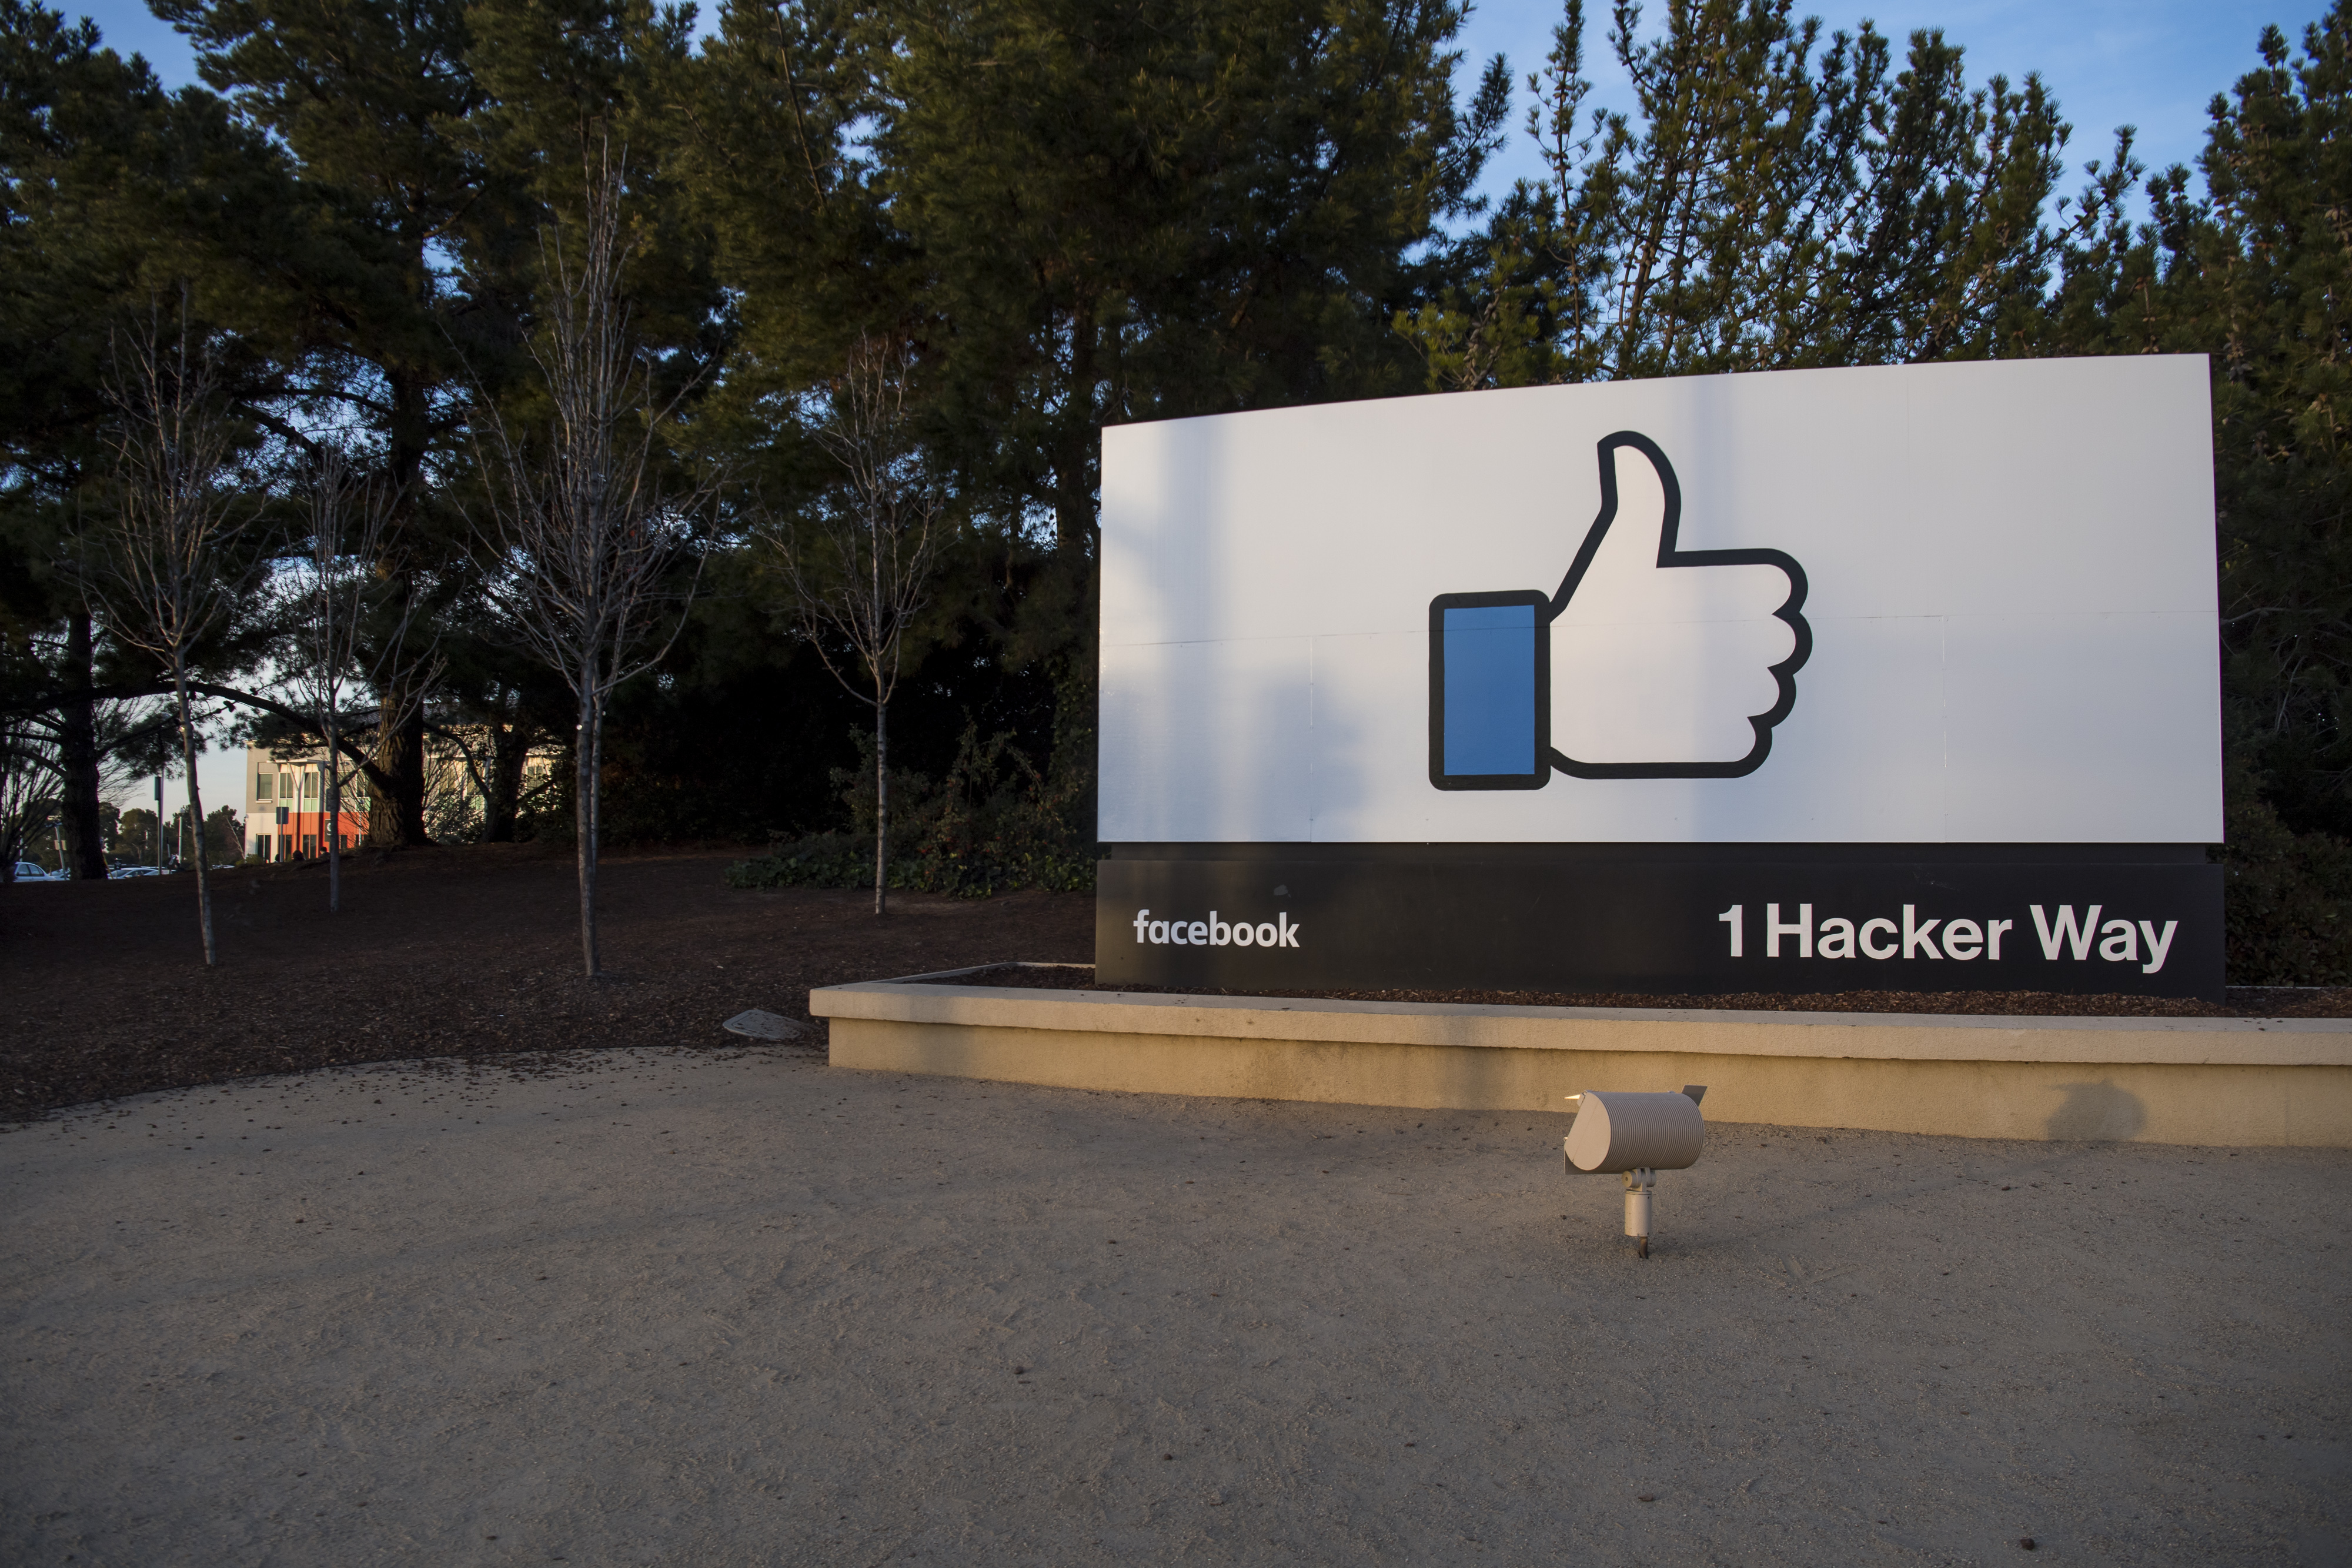 A 'thumbs-up' sign is displayed outside the Facebook headquarters in Menlo Park, California, U.S., on Monday, Jan. 30, 2017.